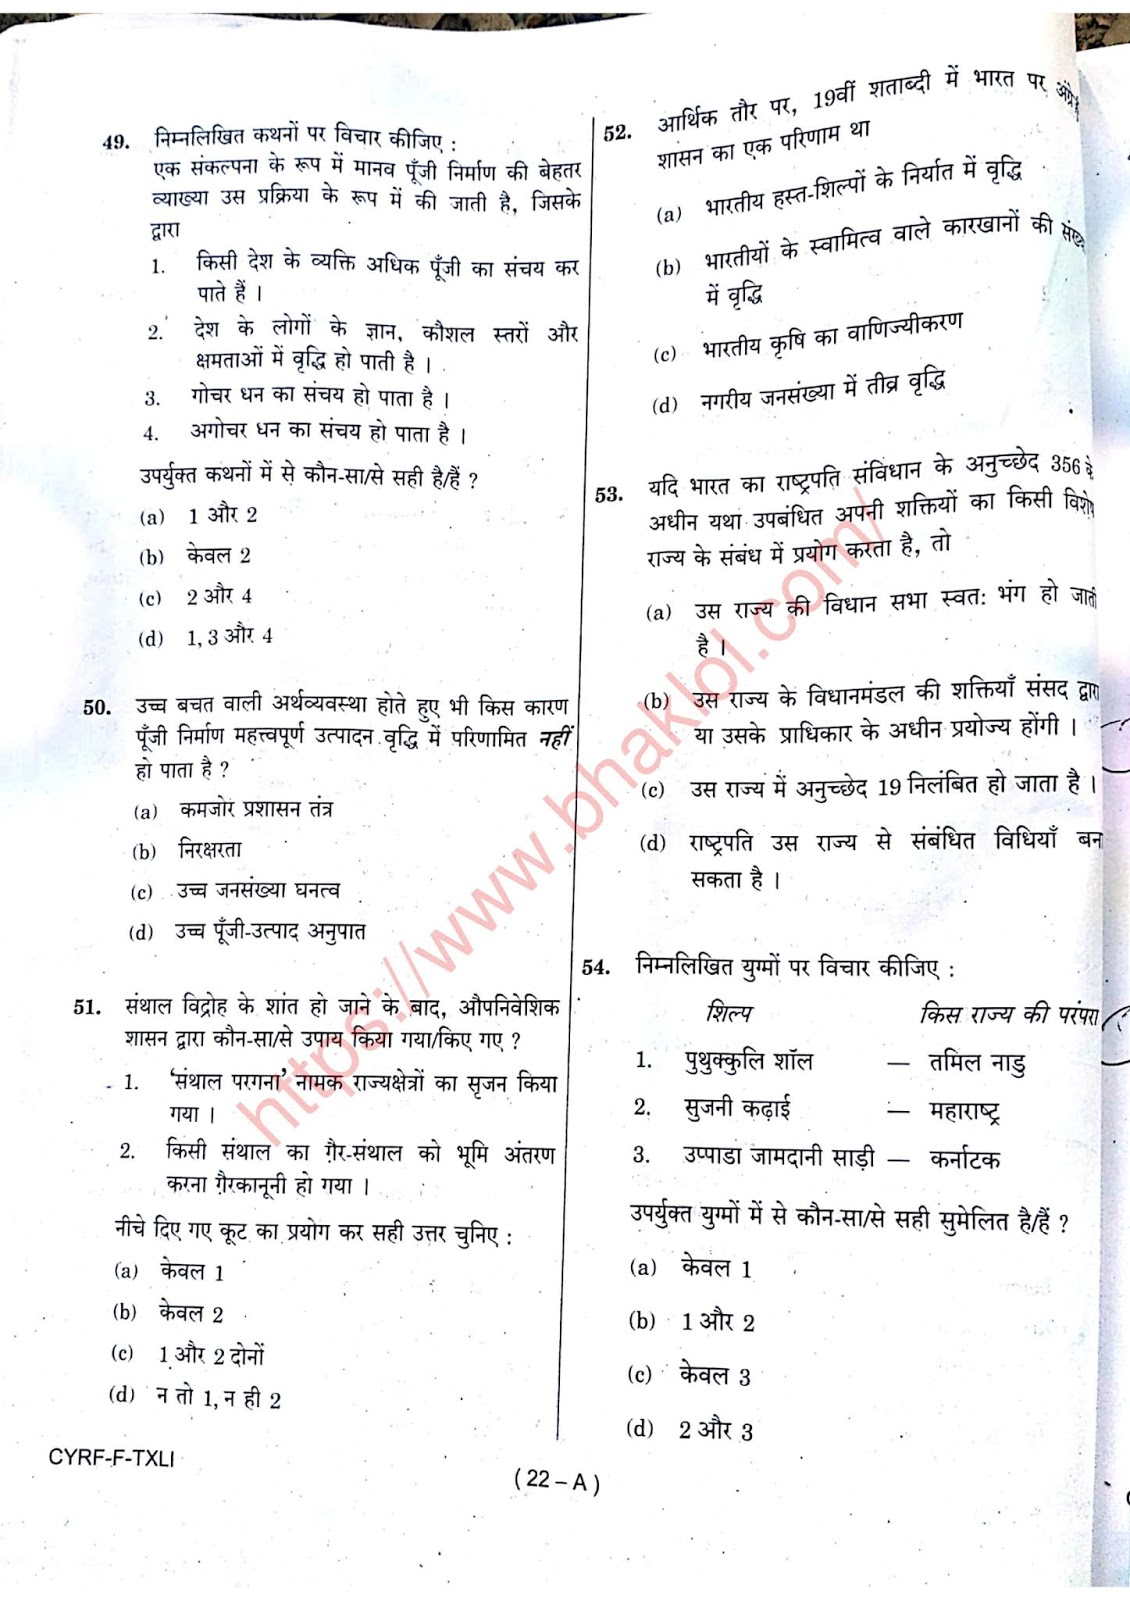 In paper pdf upsc hindi question